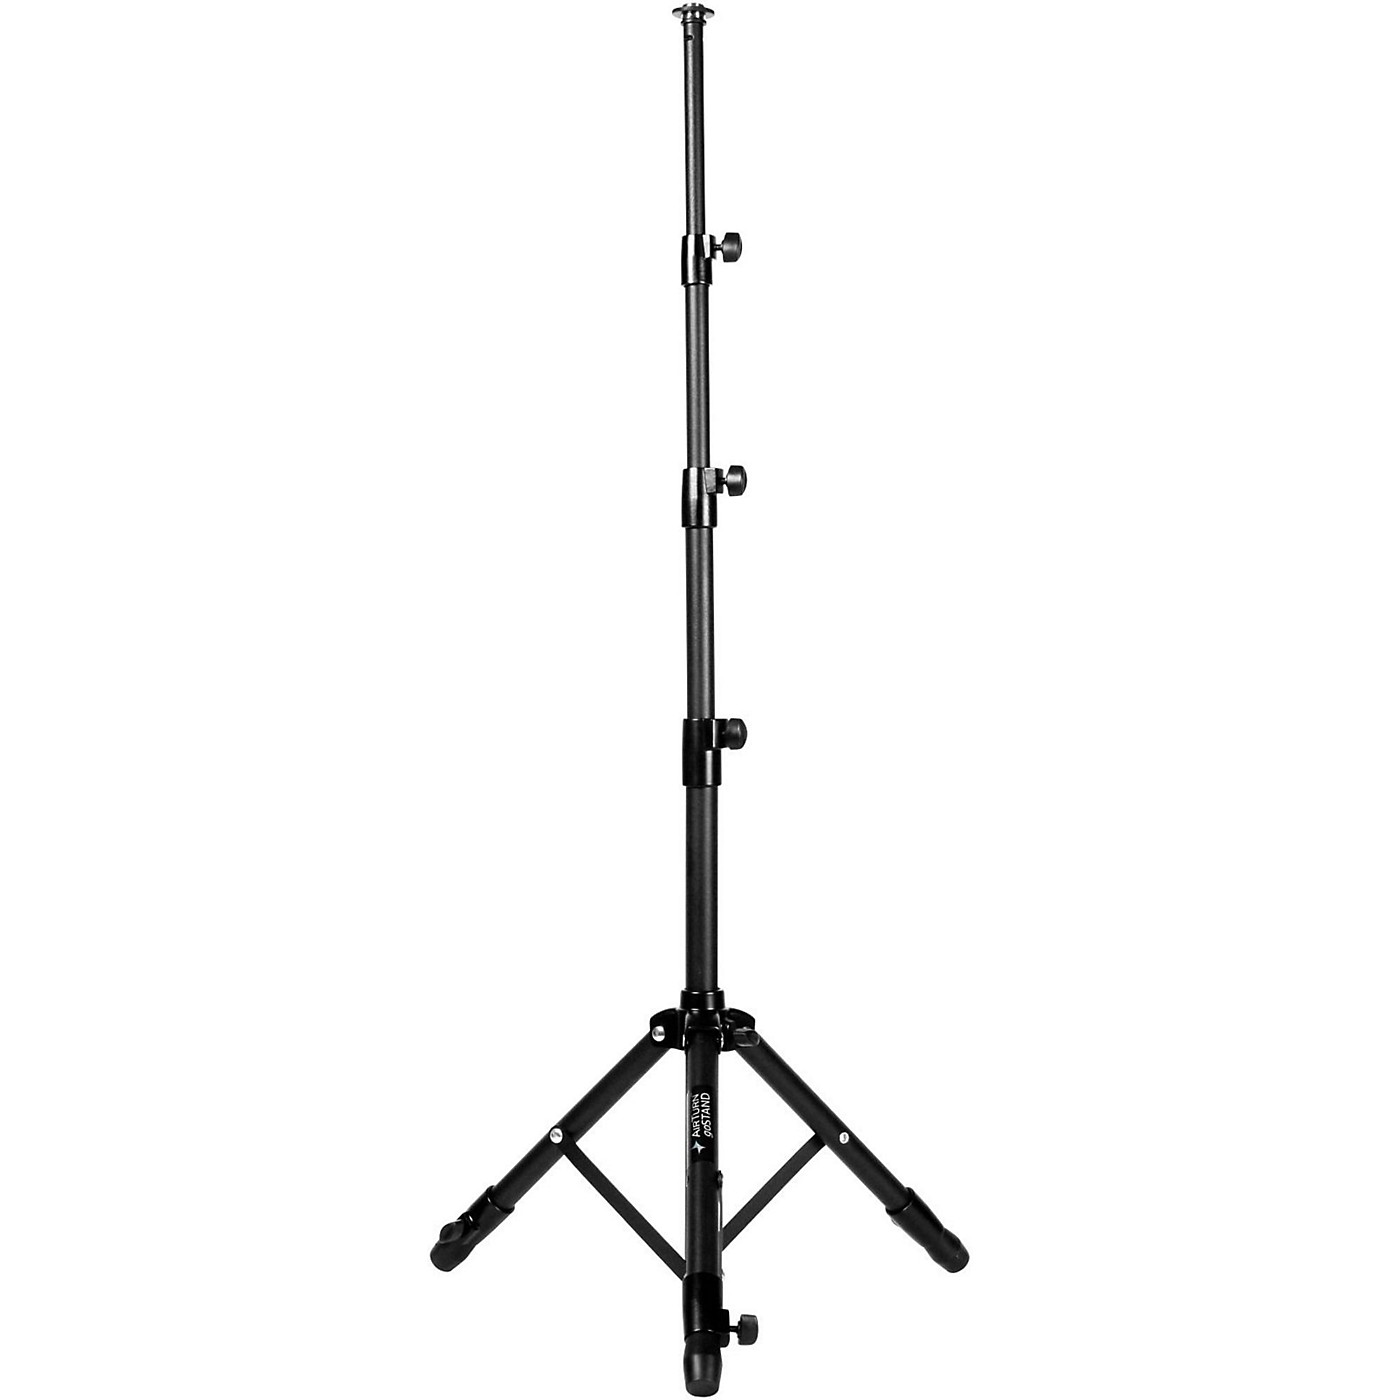 AirTurn goSTAND Portable Mic Stand for Tablets, Microphones and Accessories thumbnail